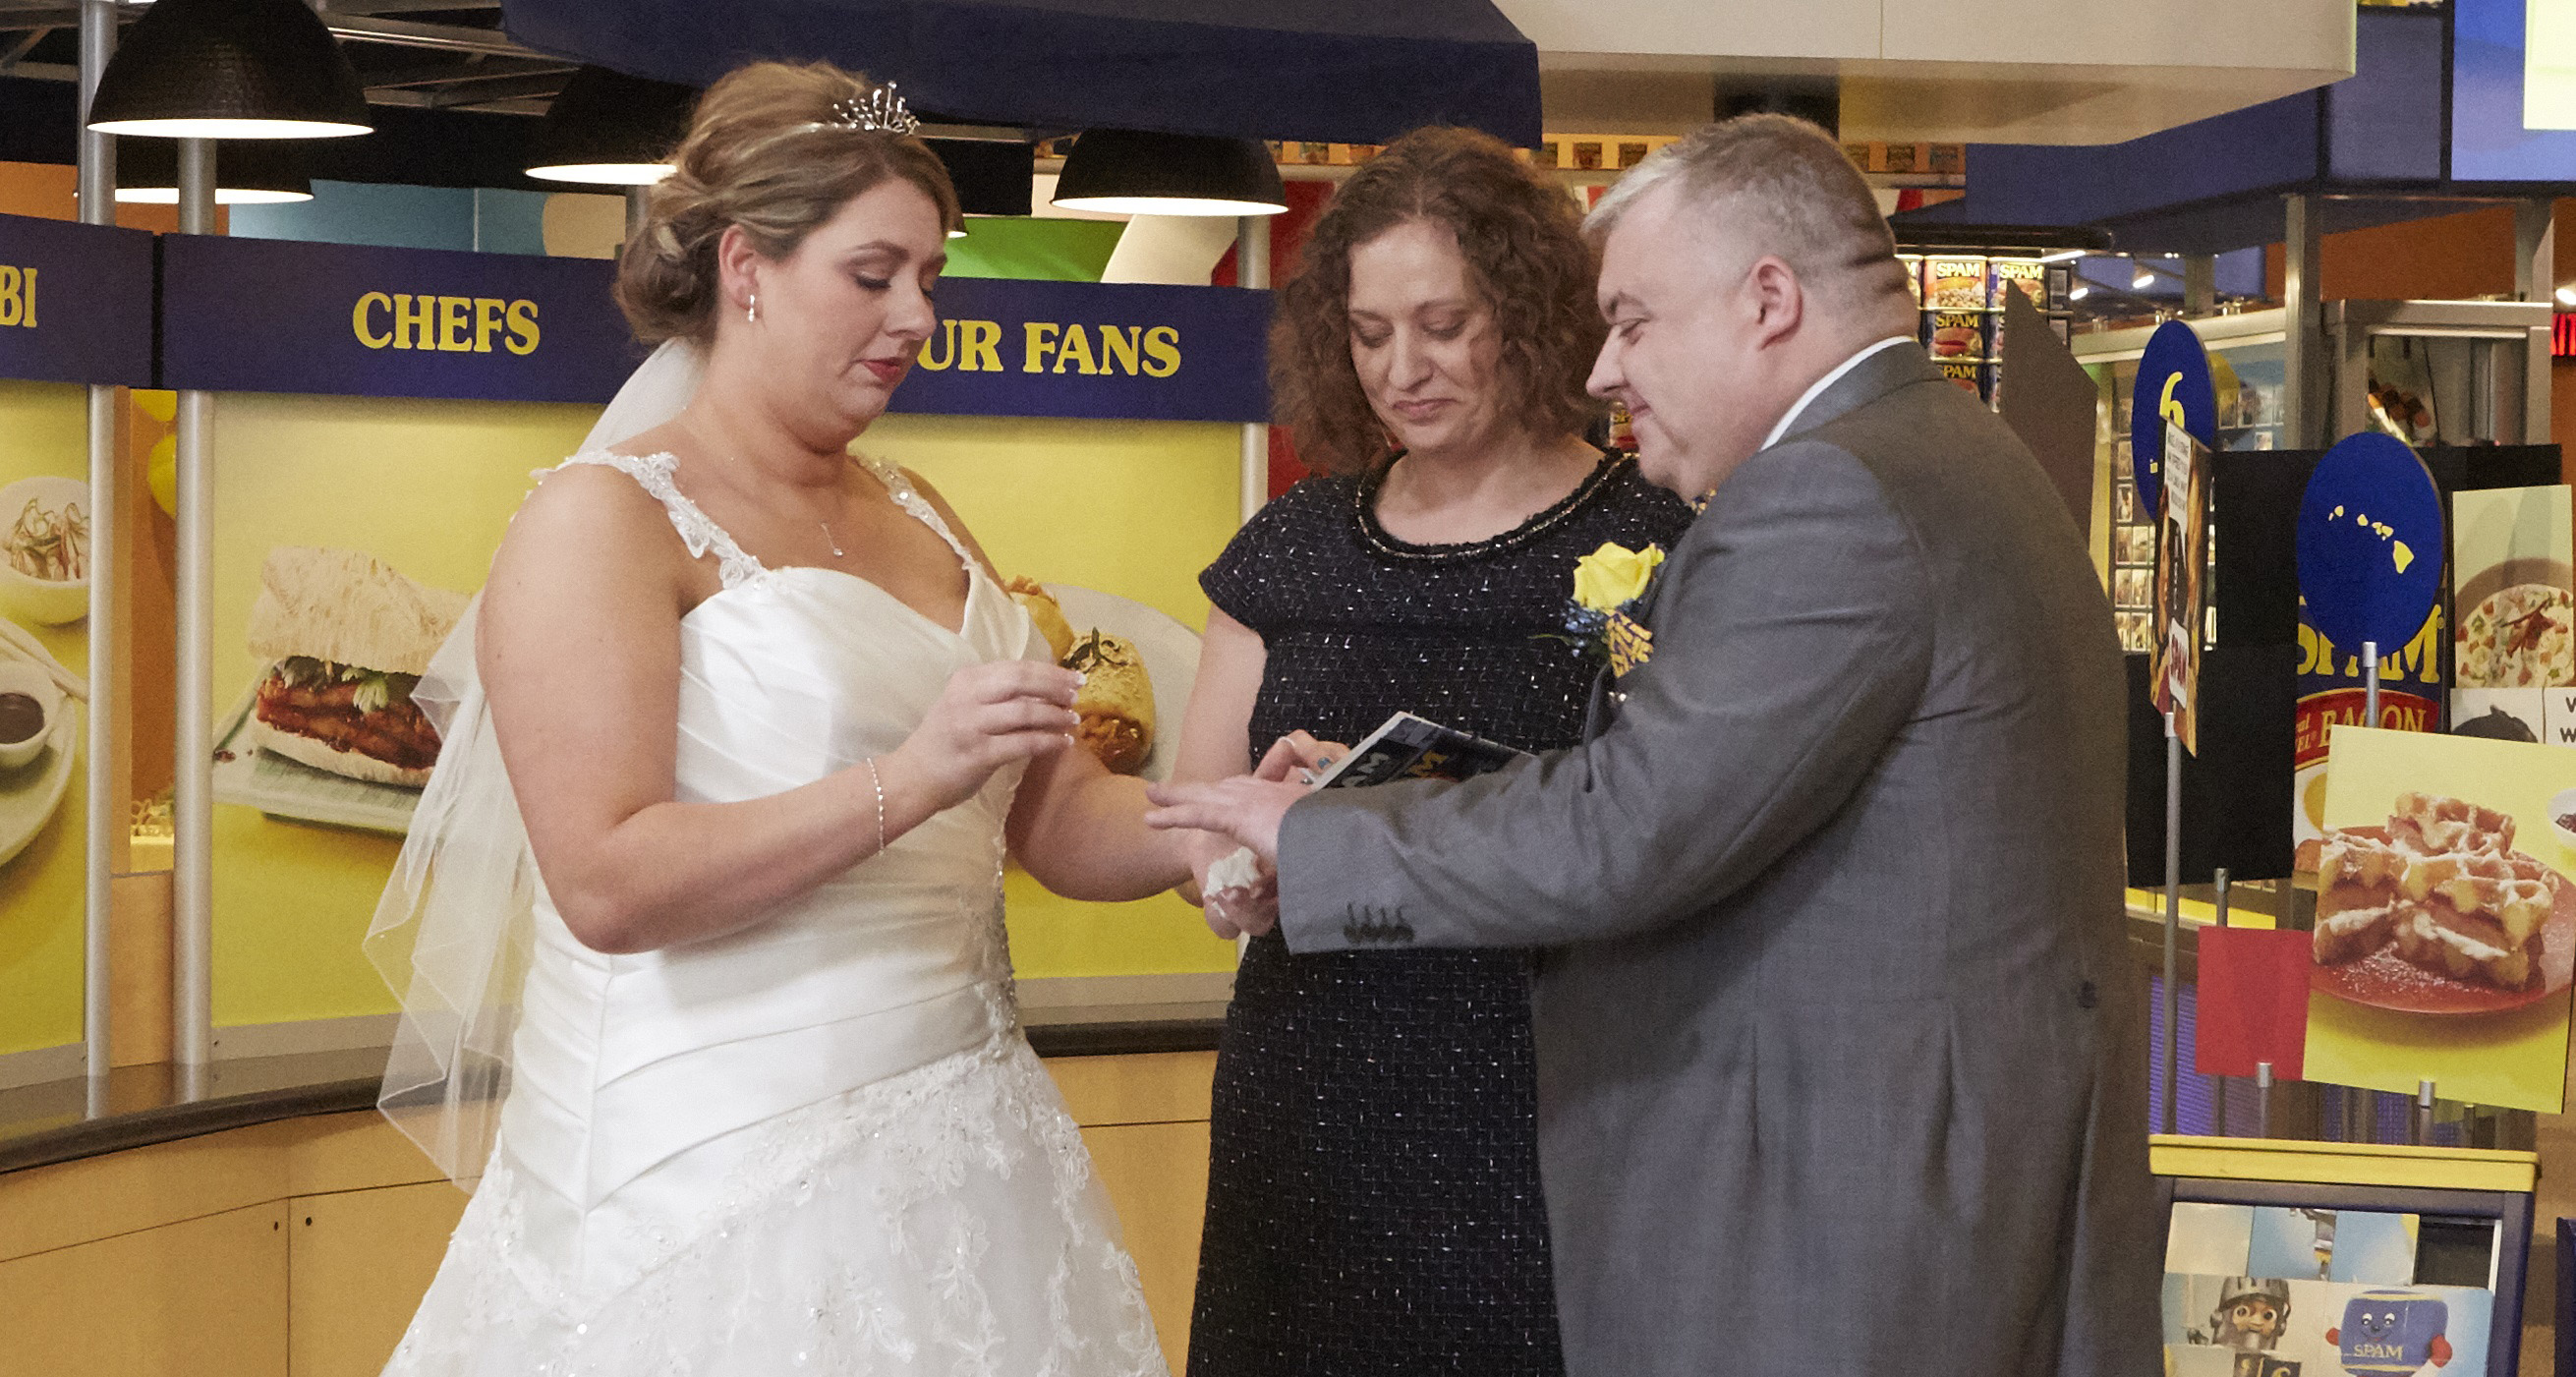 Mark I Love SPAM Benson and Anne Mousley exchanging vows at the SPAM Museum